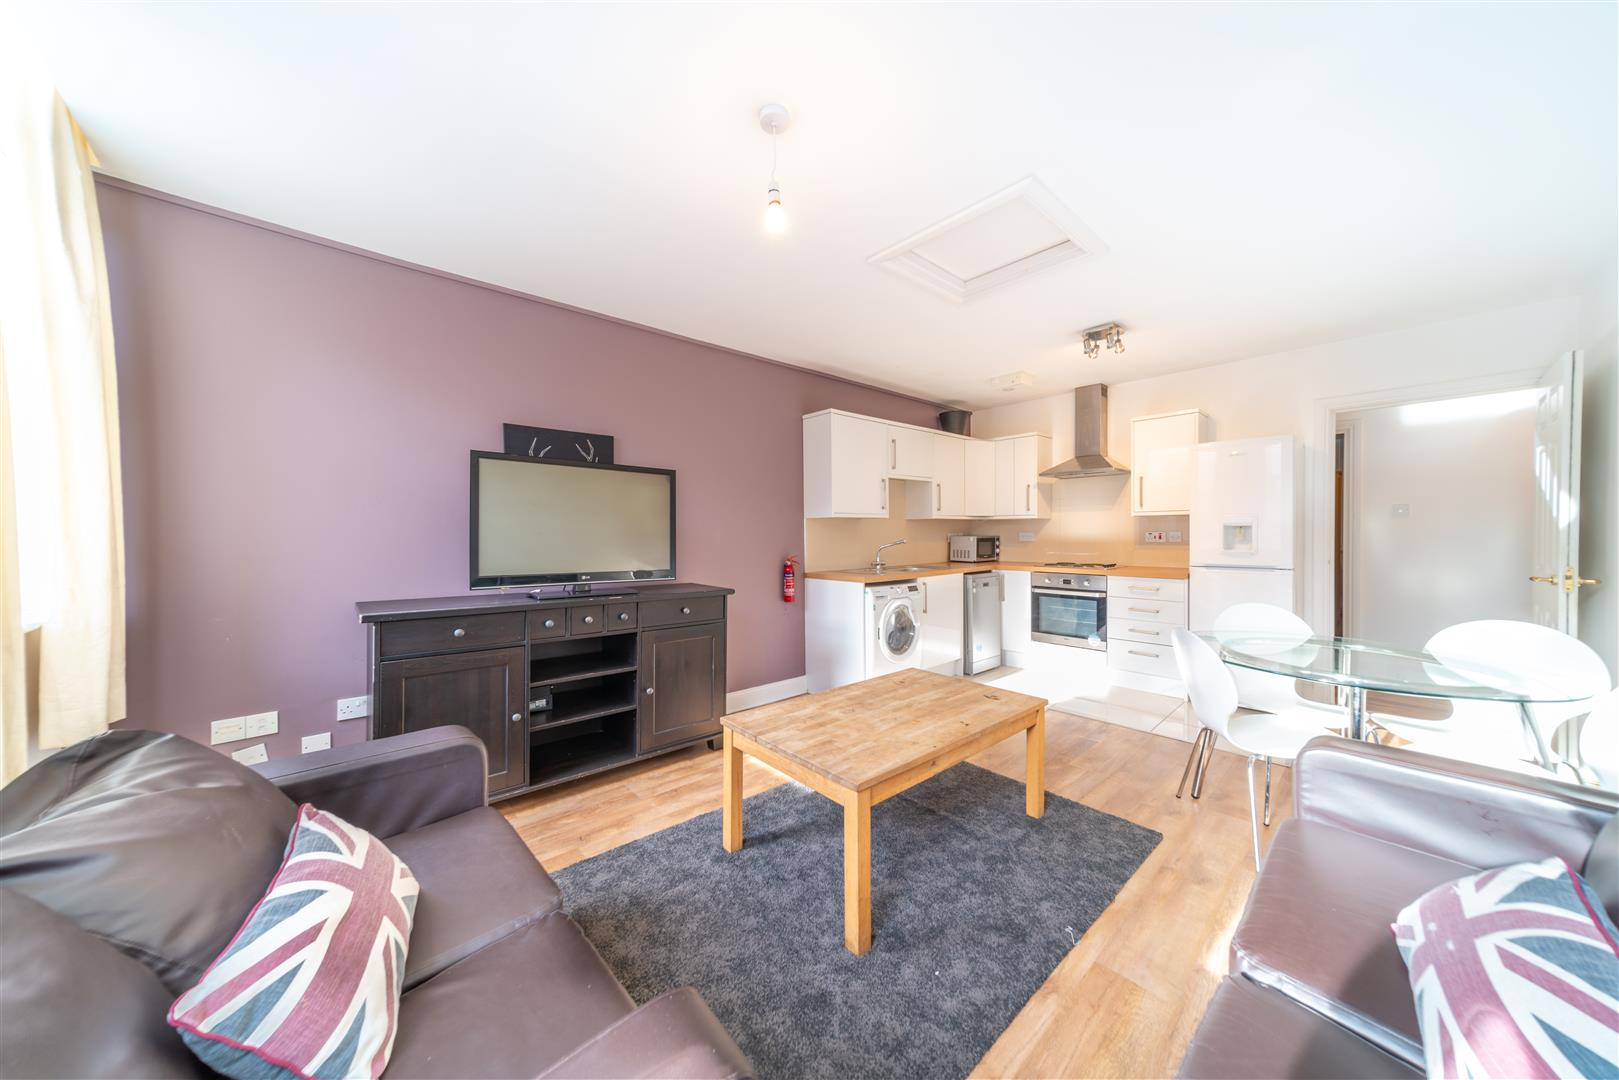 3 bed apartment to rent in Newcastle Upon Tyne, NE1 5SF, NE1